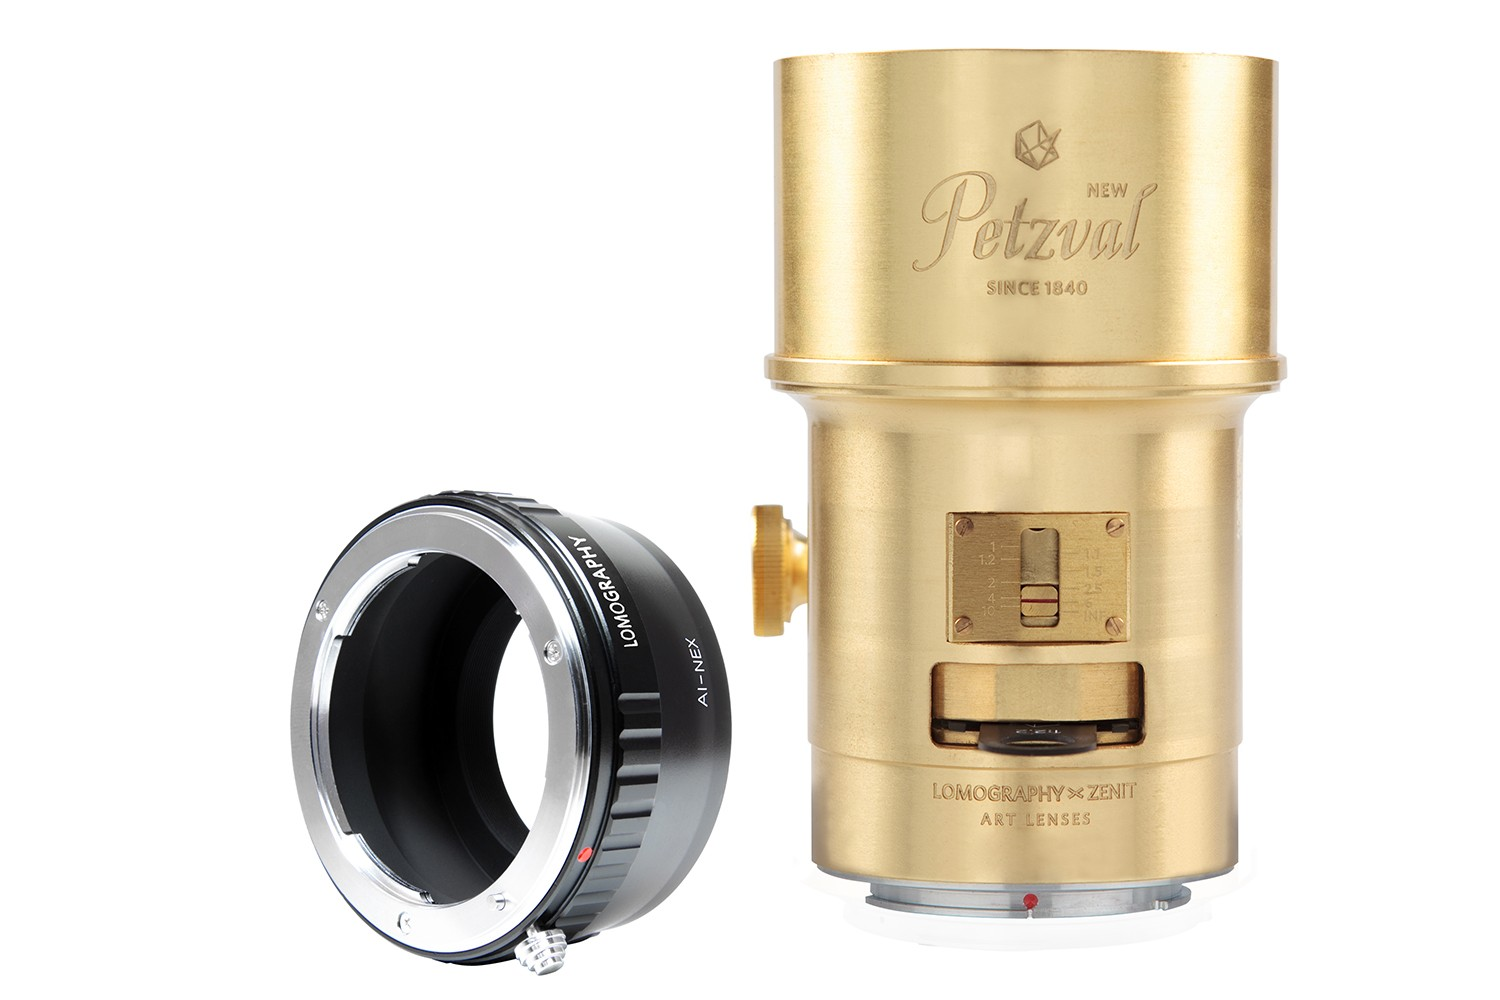 New Petzval 85 Art Lens Brass - Nikon F Mount with NEX Adapter